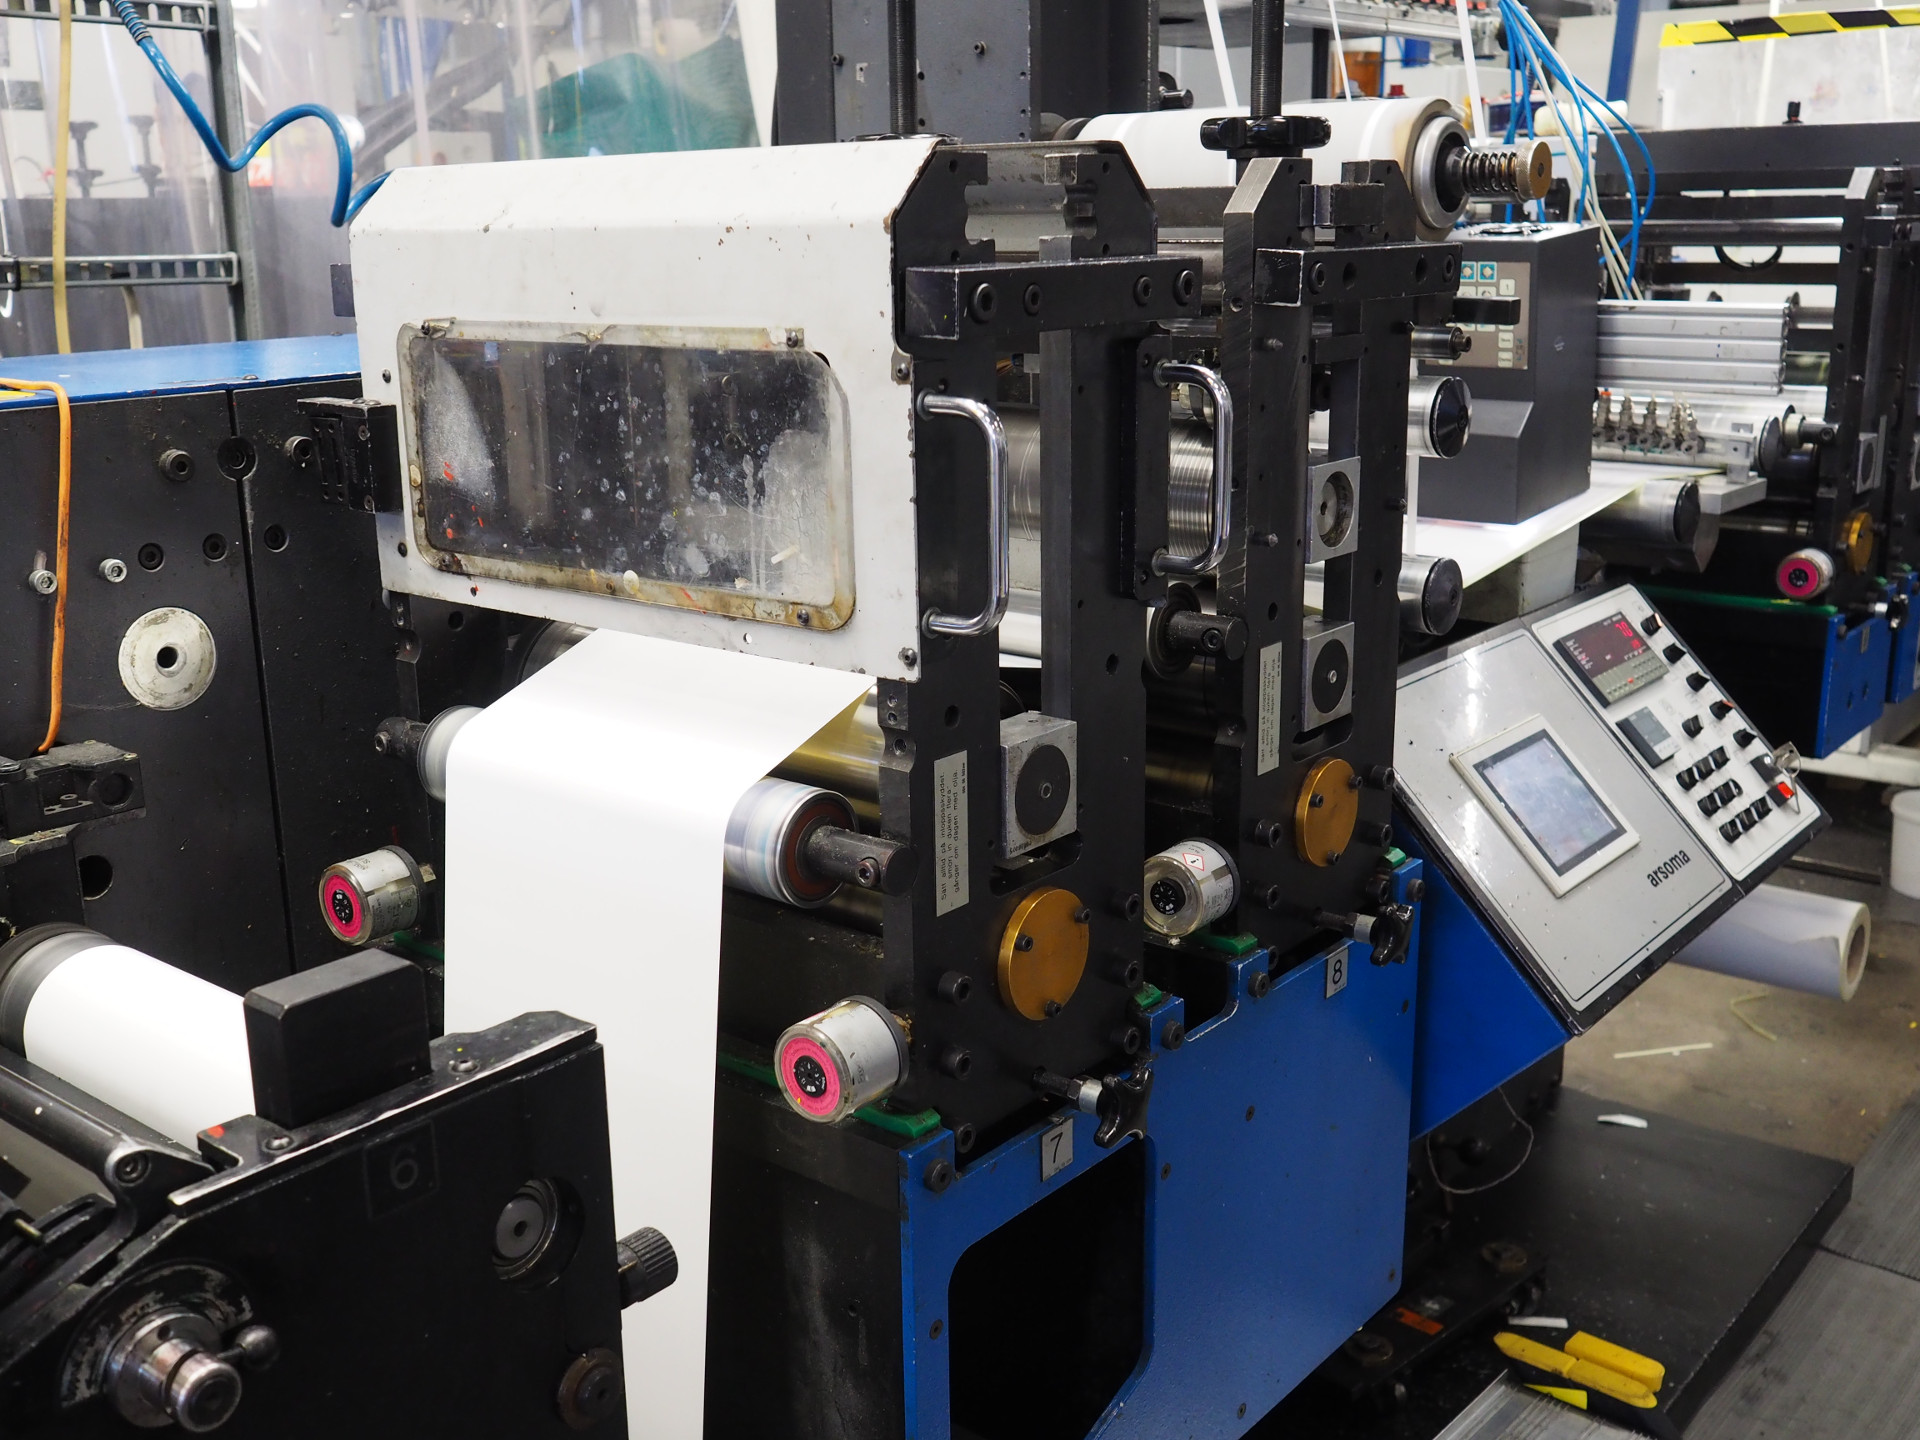 Gallus Em 280 6 Colours Flexo Printing Machine From 1999 With Uv And